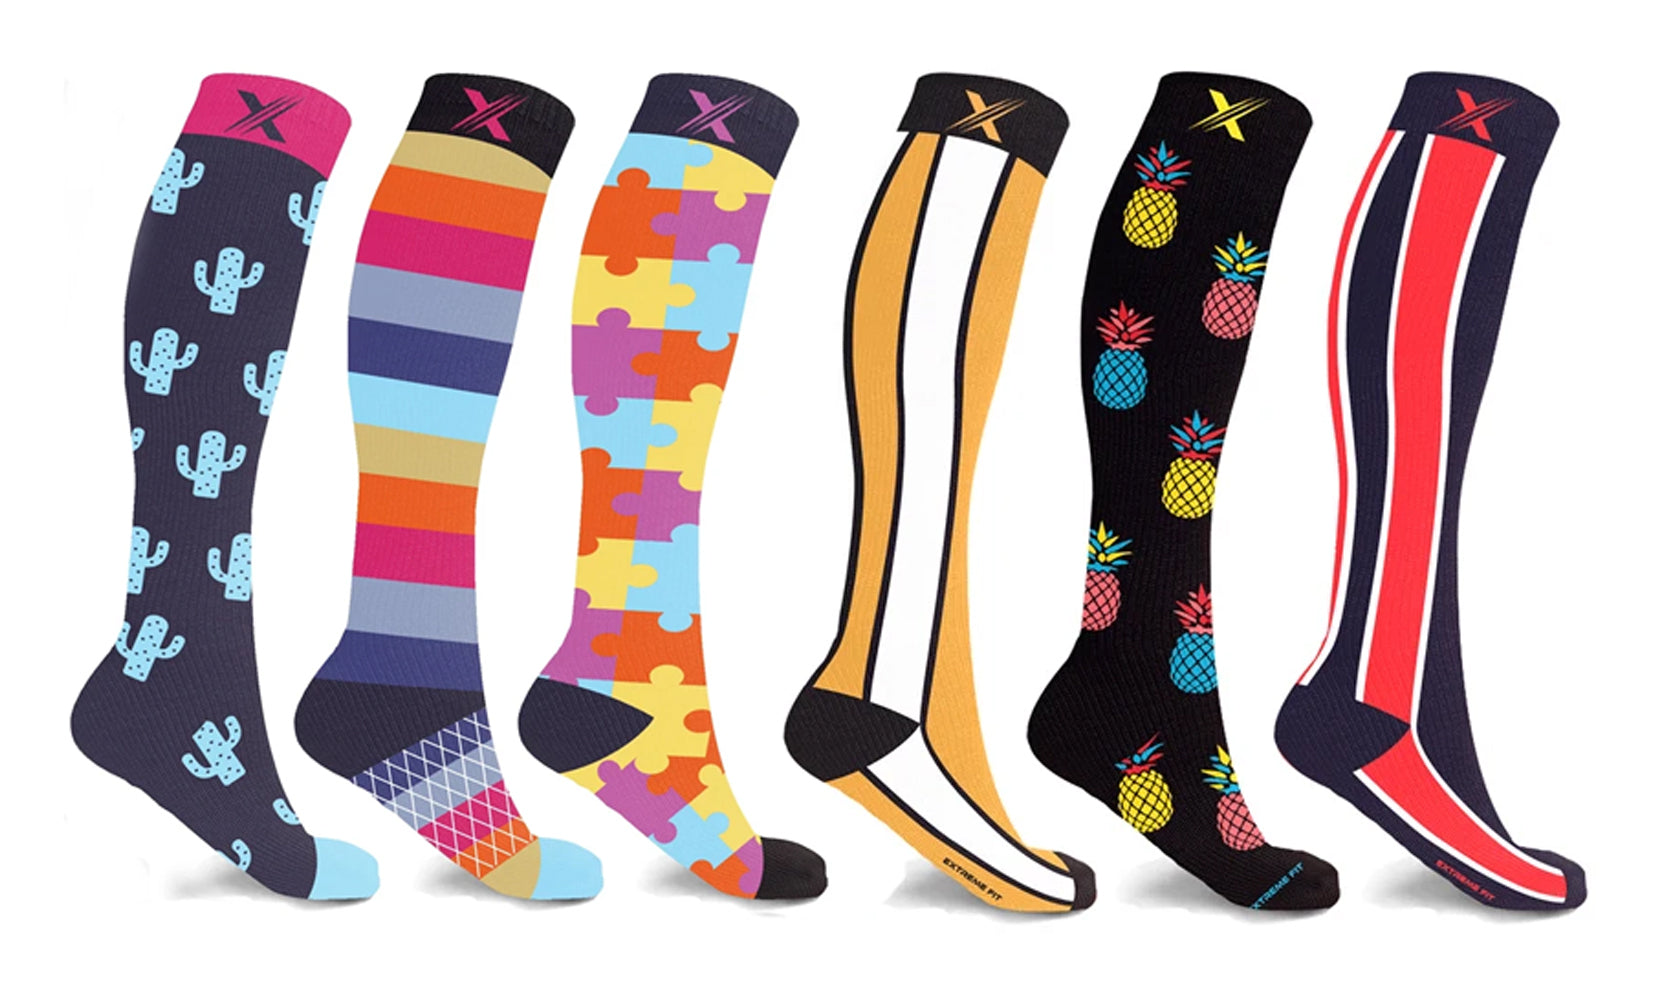 Unsiex Knee-High Compression Socks Collection (3-Pairs or 6-Pairs)